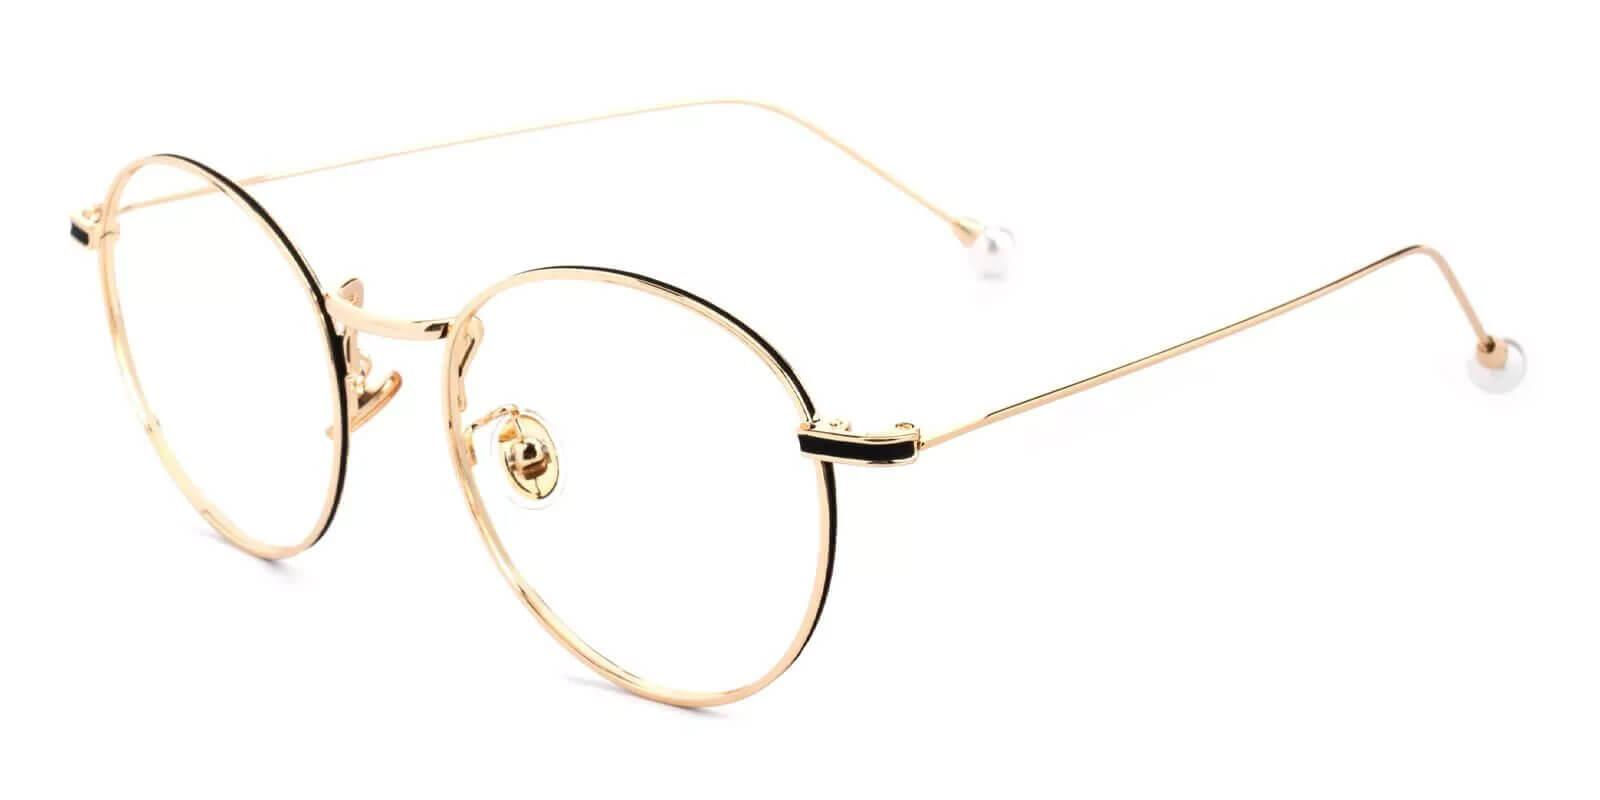 Pearl Gold Metal Eyeglasses , NosePads Frames from ABBE Glasses